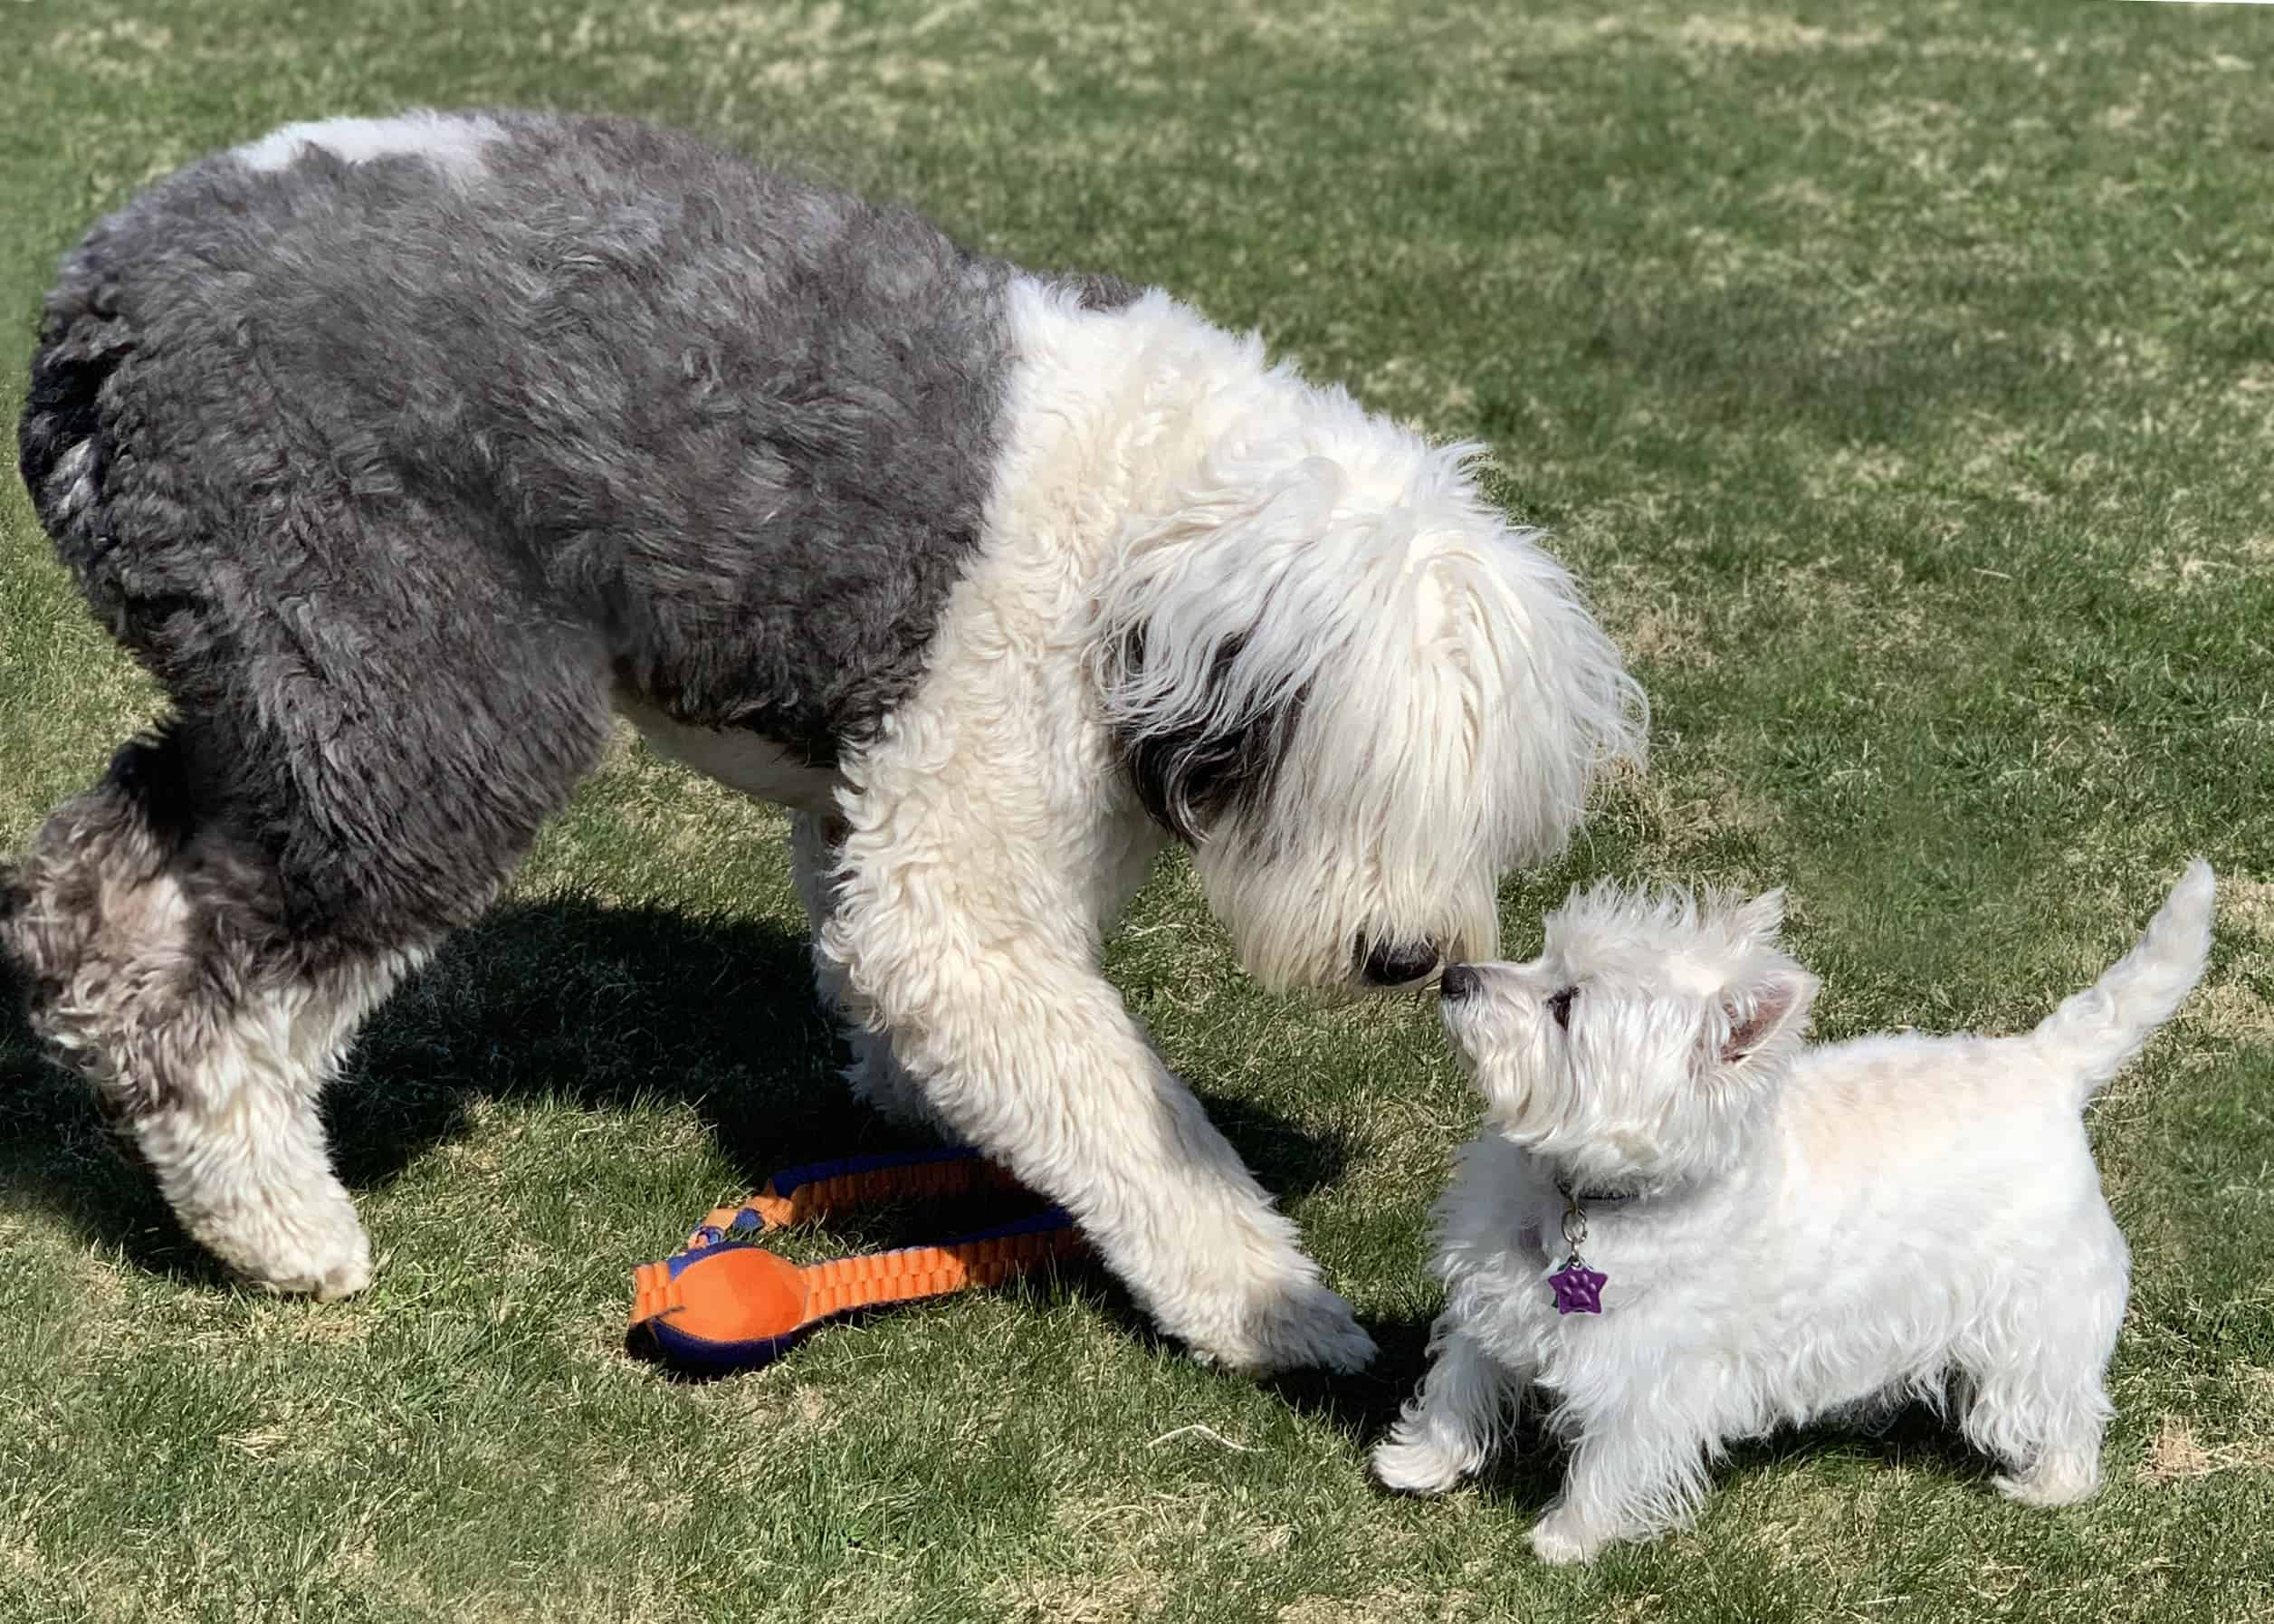 Sheepdog plays with Westie. The number one component of dog playdates is to gain trust, not only in both dogs but the owner as well.